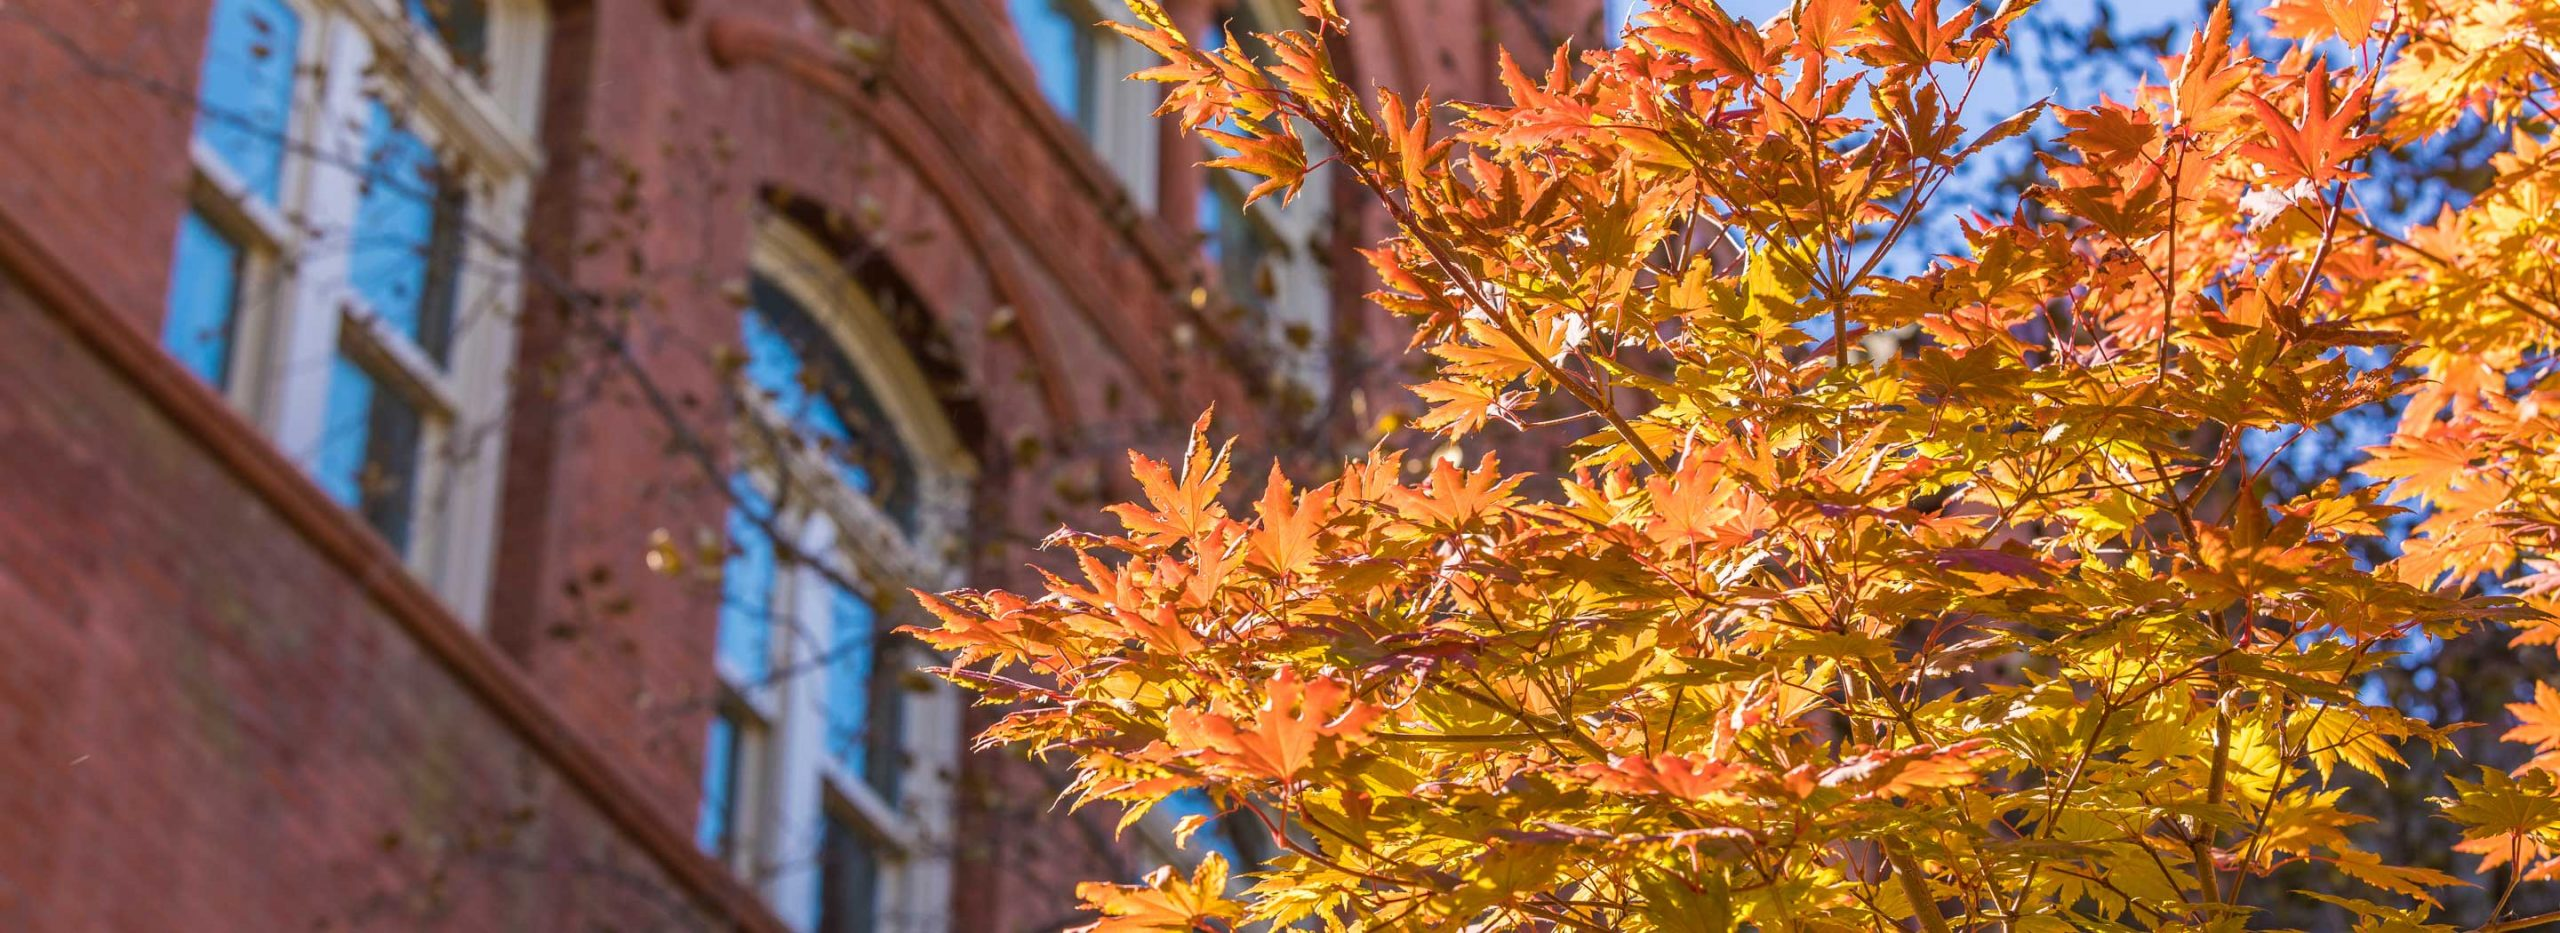 Old Main hall with a tree in front of it in autumn.